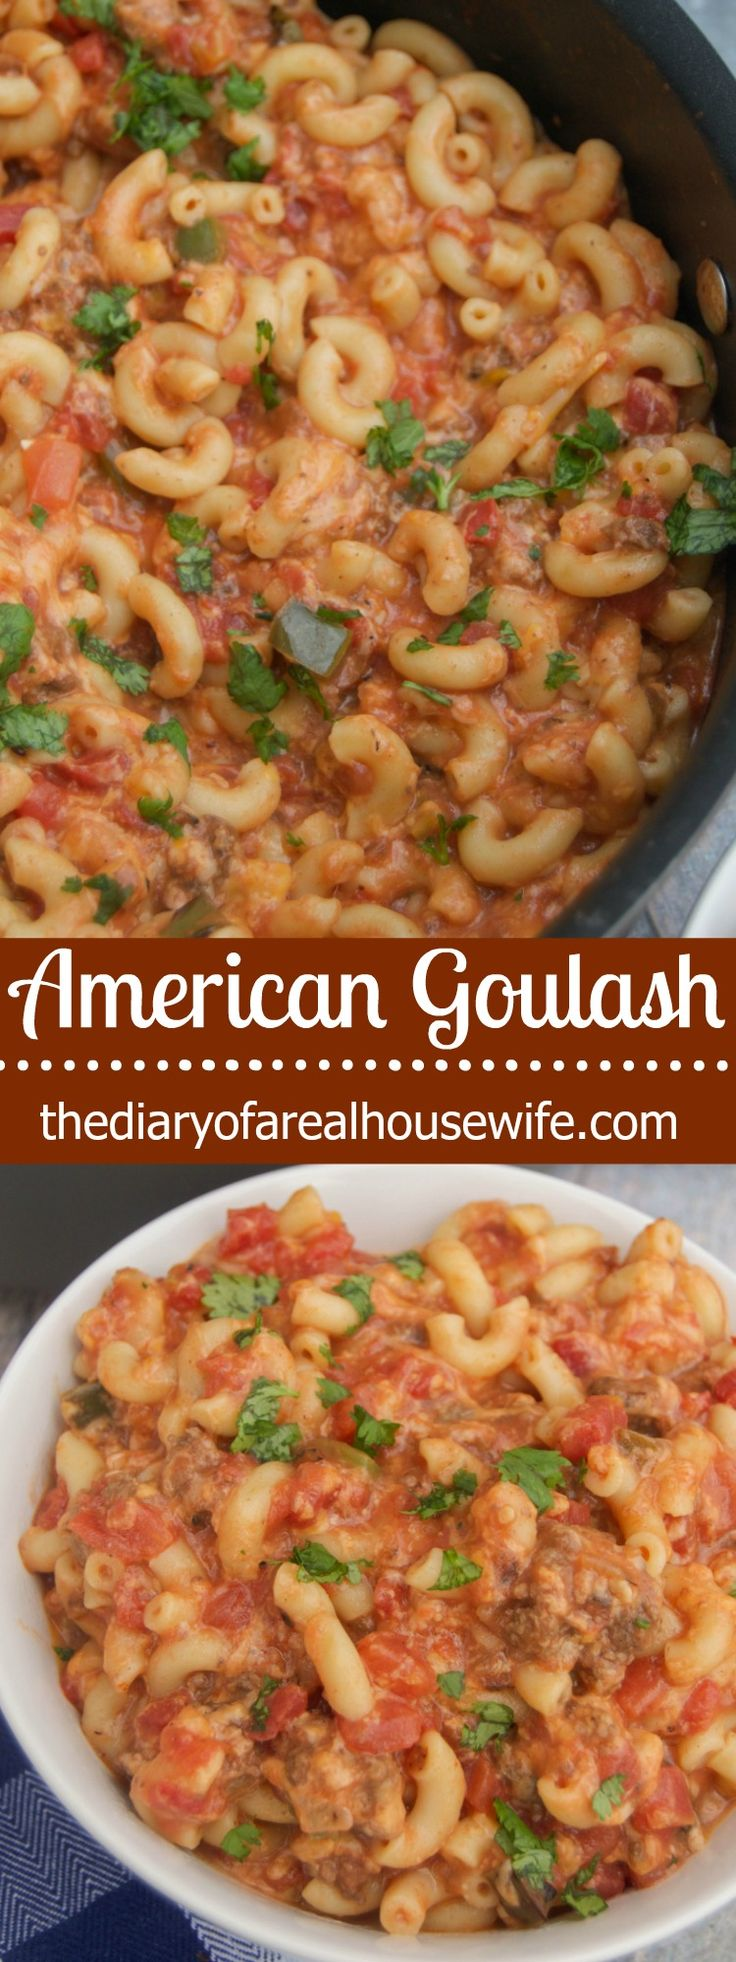 This Goulash recipe is my husbands absolute favorite!  Even though he calls is American chop suey. I grew up calling it Goulash, and it was a family favorite growing up!